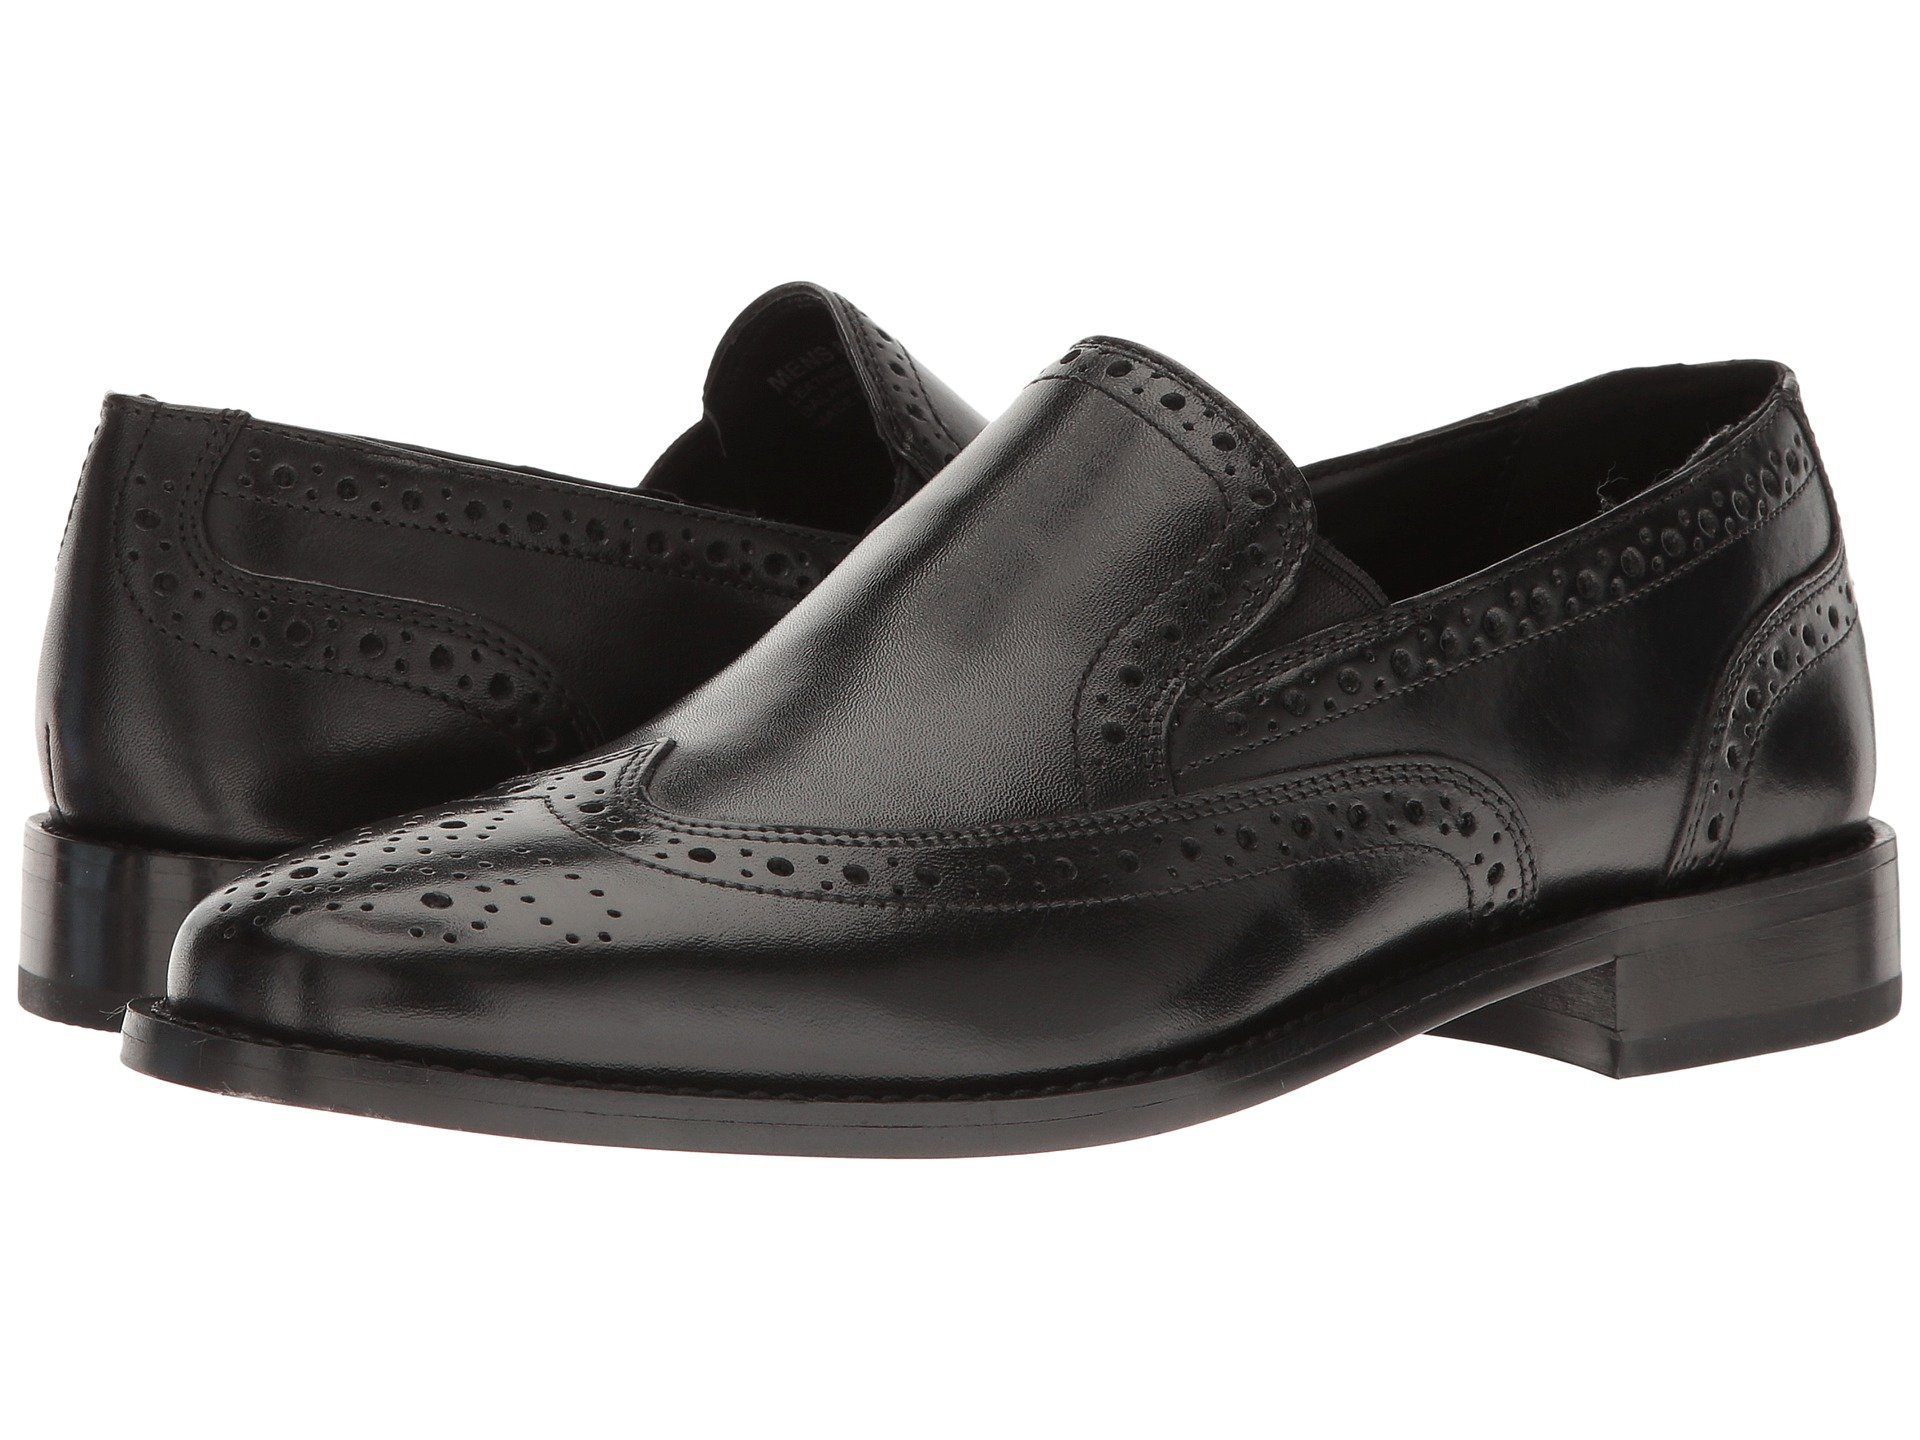 7b2c8e248e8 Your Selections. Shoes · Loafers · Men · Wingtip